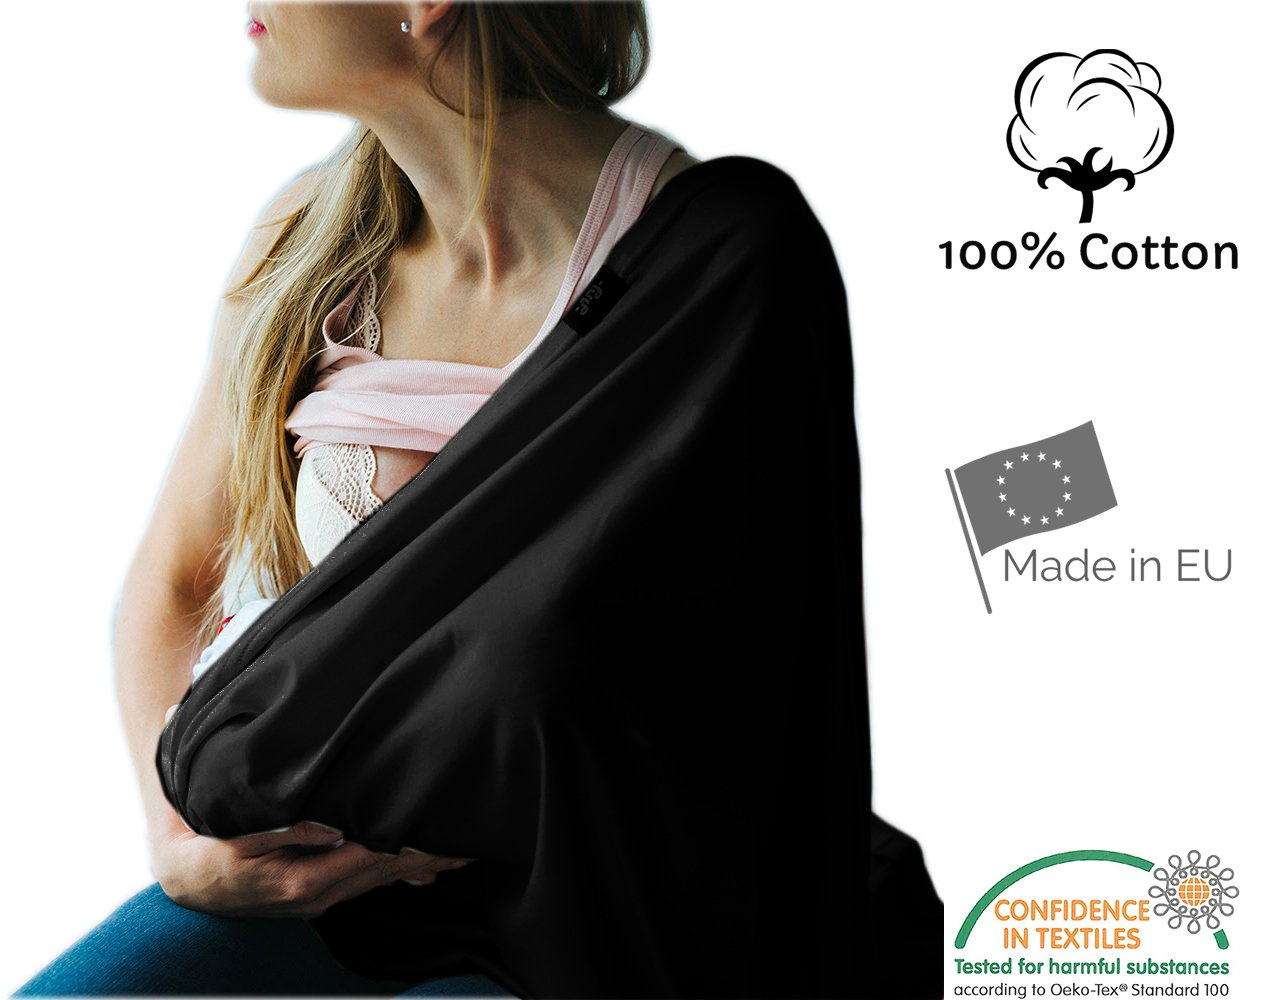 Nursing Cover Infinity Breastfeeding Scarf 100% Eco Cotton Breathable Made in Europe High Quality Fabric (Turquoise) PULP Bamboo